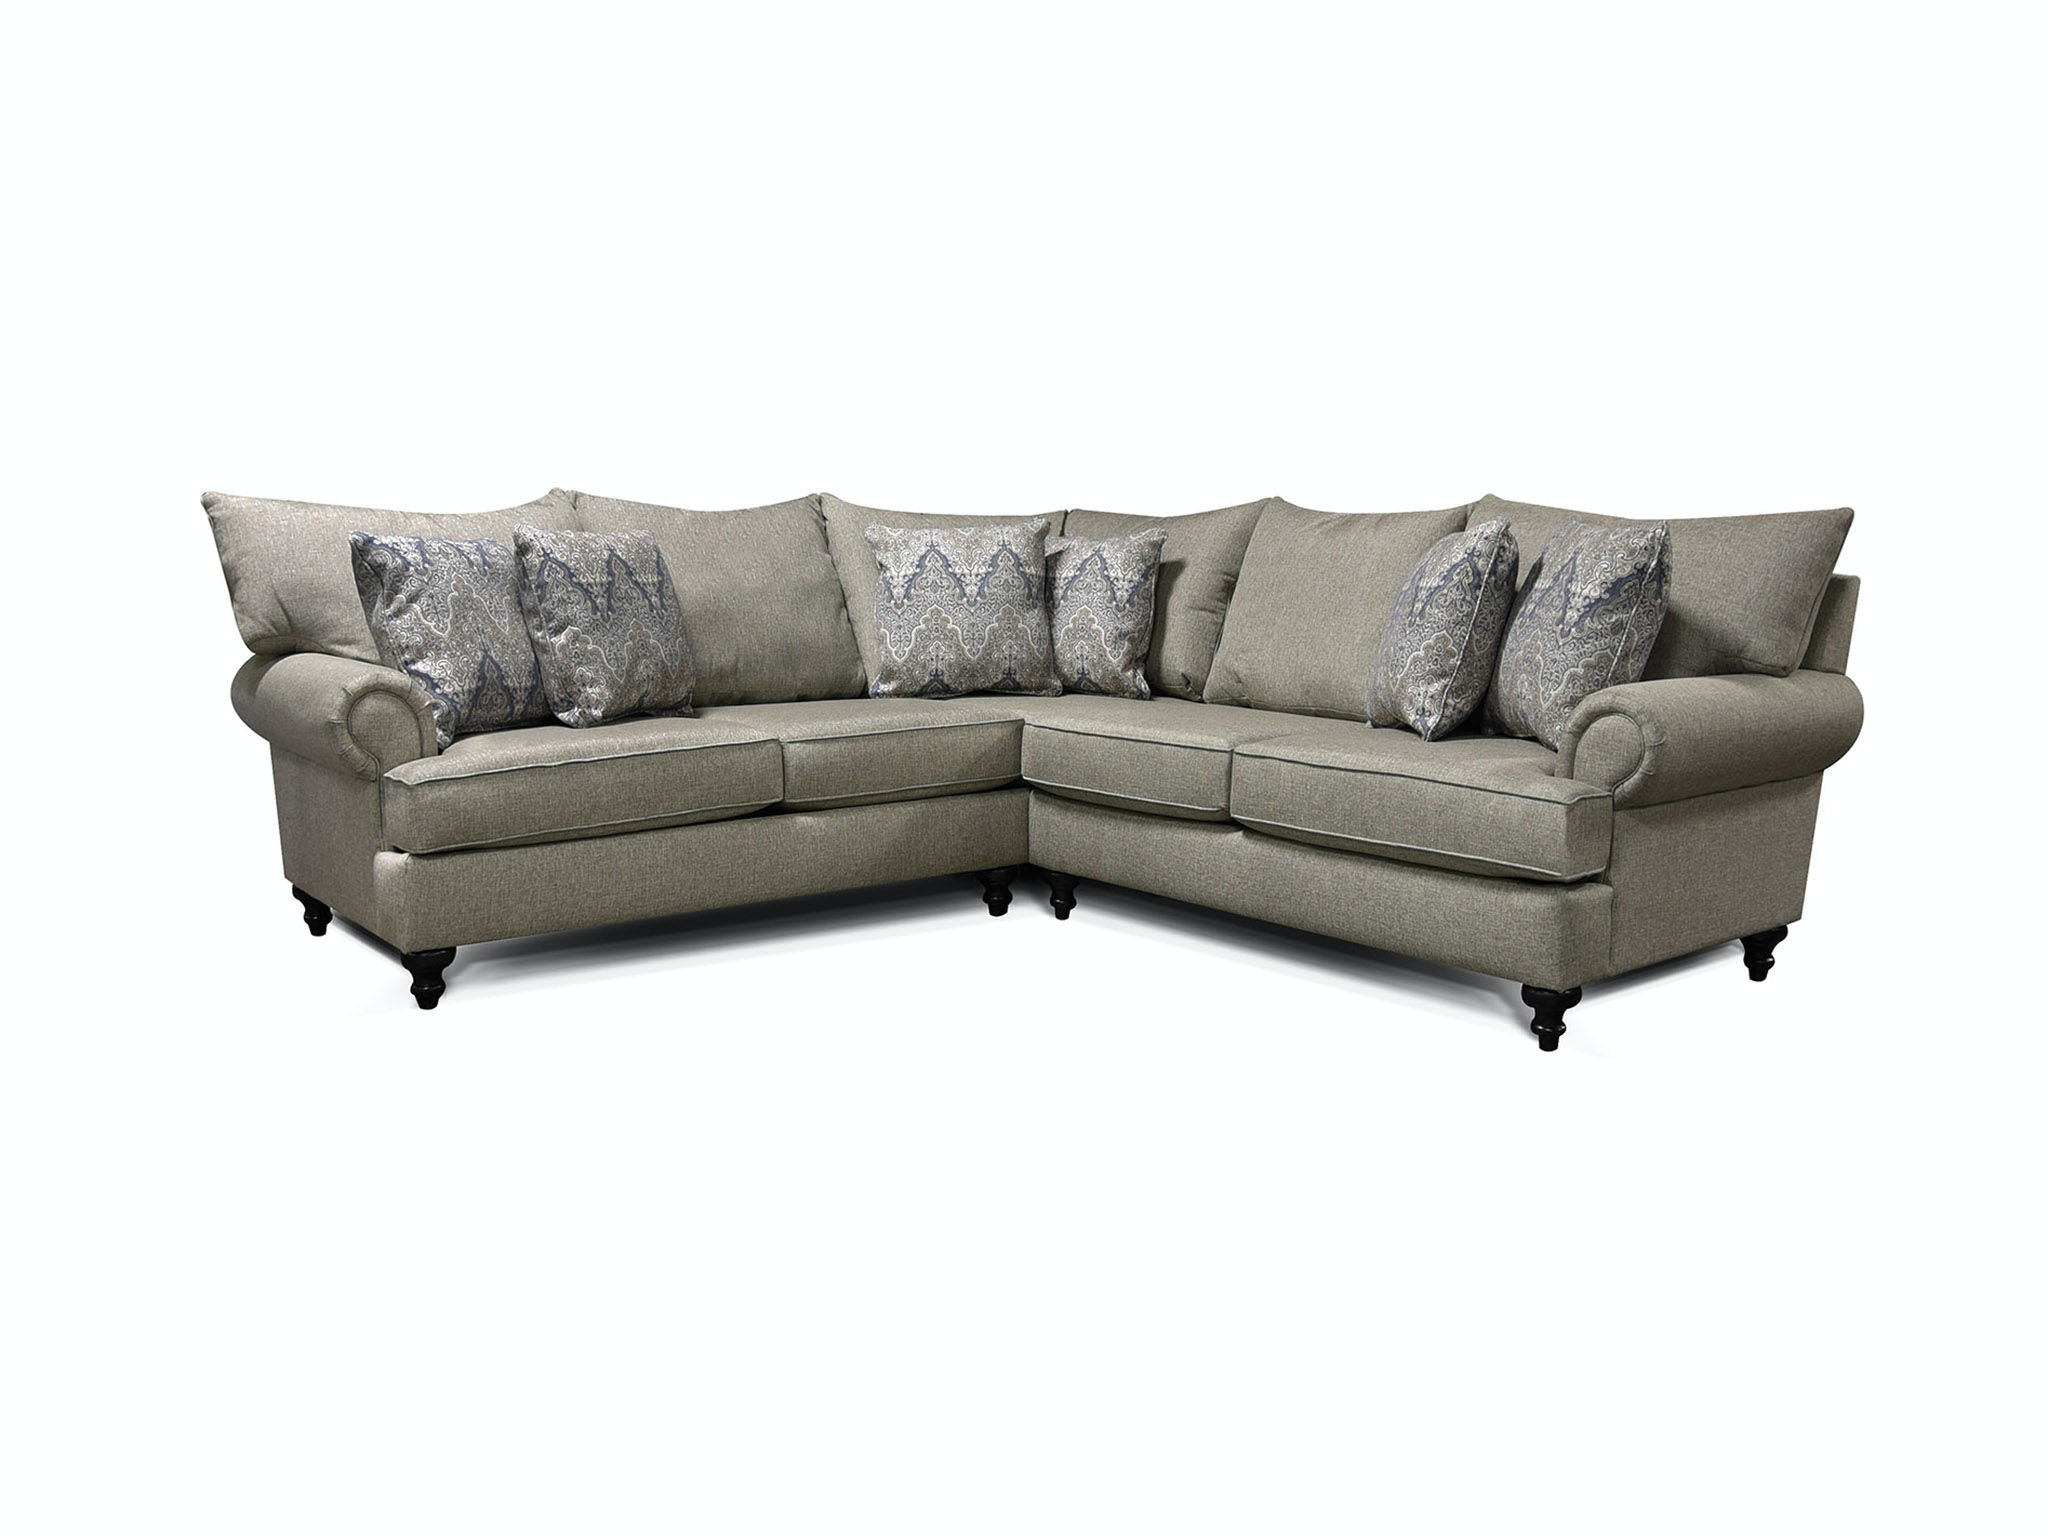 england living room rosalie sectional 4y00 sect england furniture rh englandfurniture com england sectional sofa 2400 england sectional sofa prices